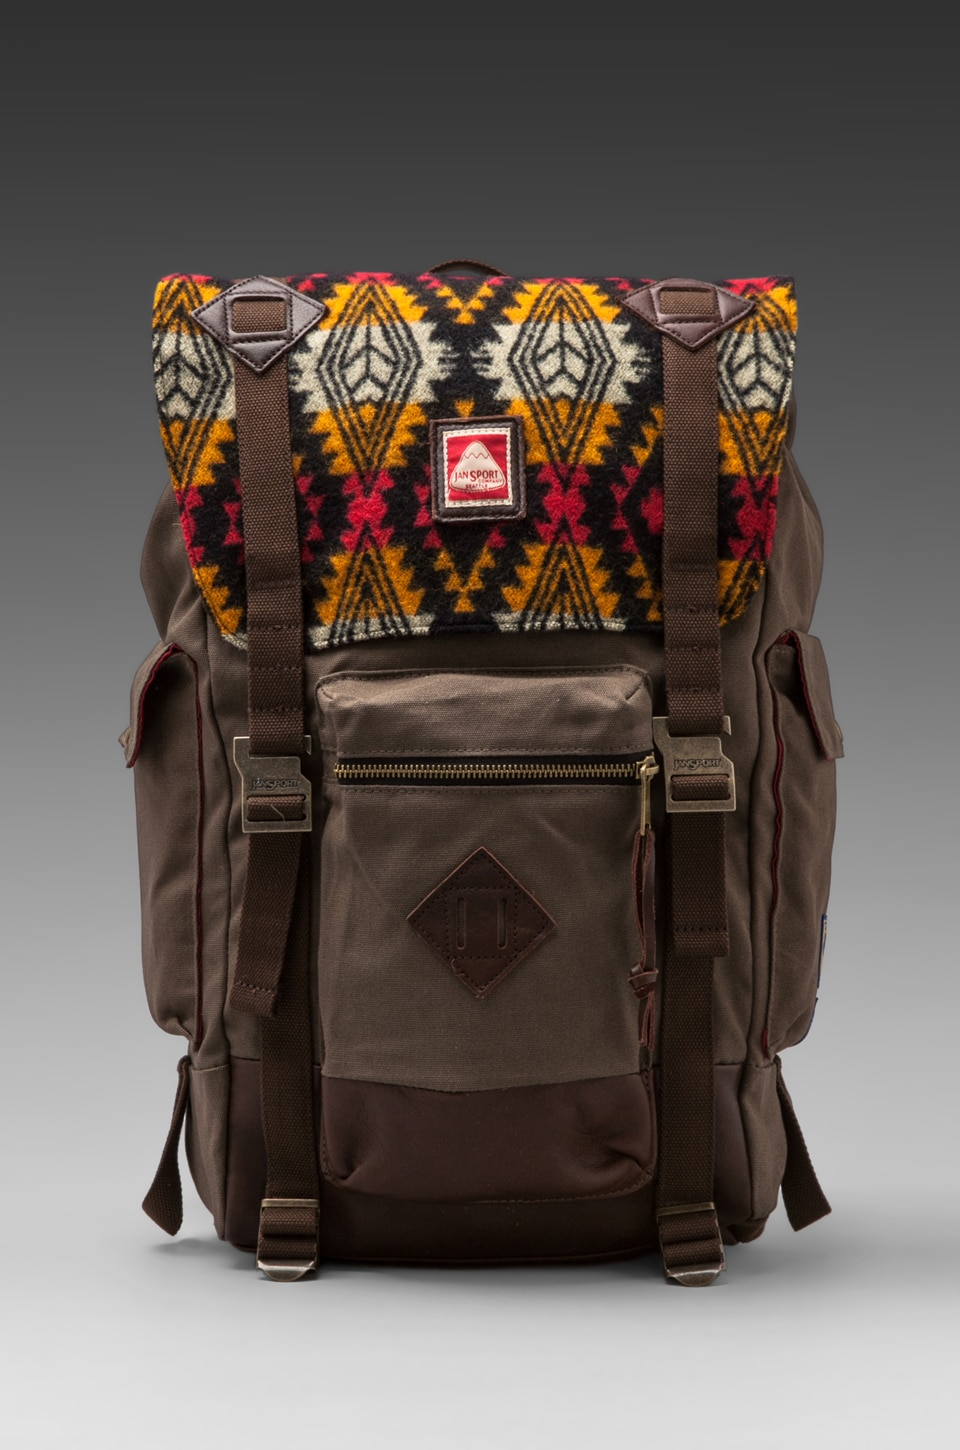 Jansport x Pendleton Adobe Backpack en Imprimé